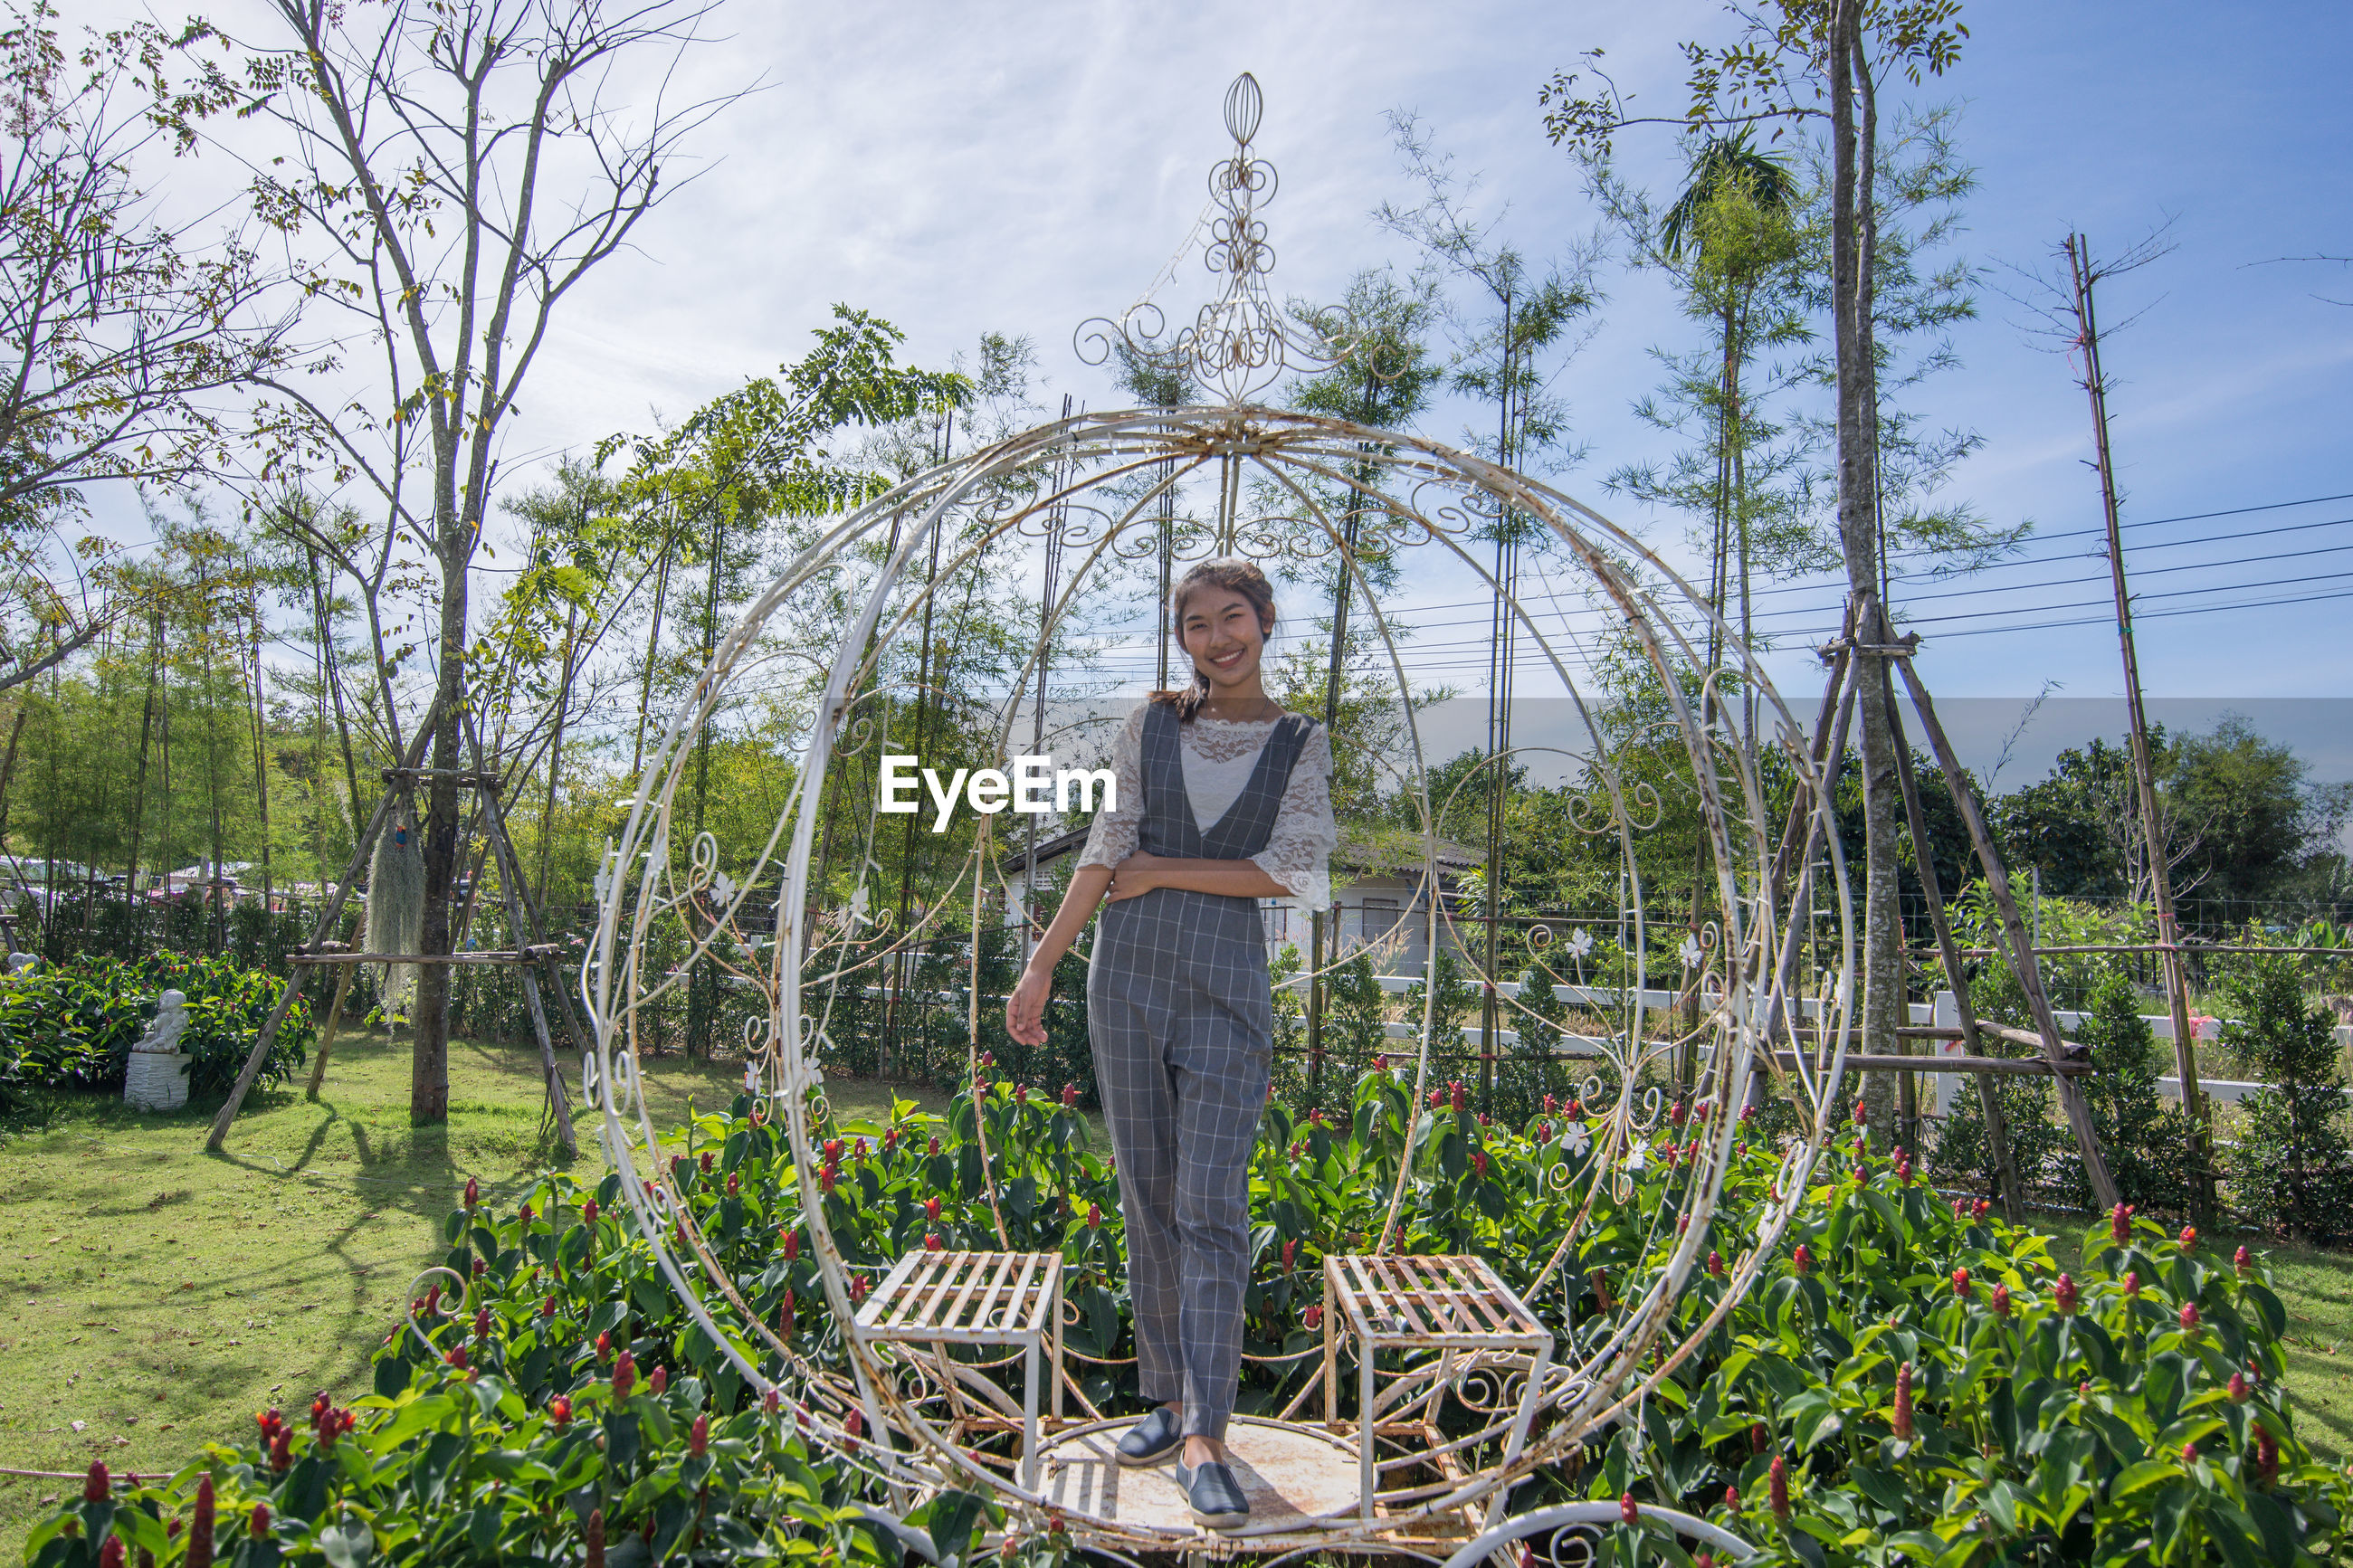 Portrait of woman standing on metallic structure by plants against sky